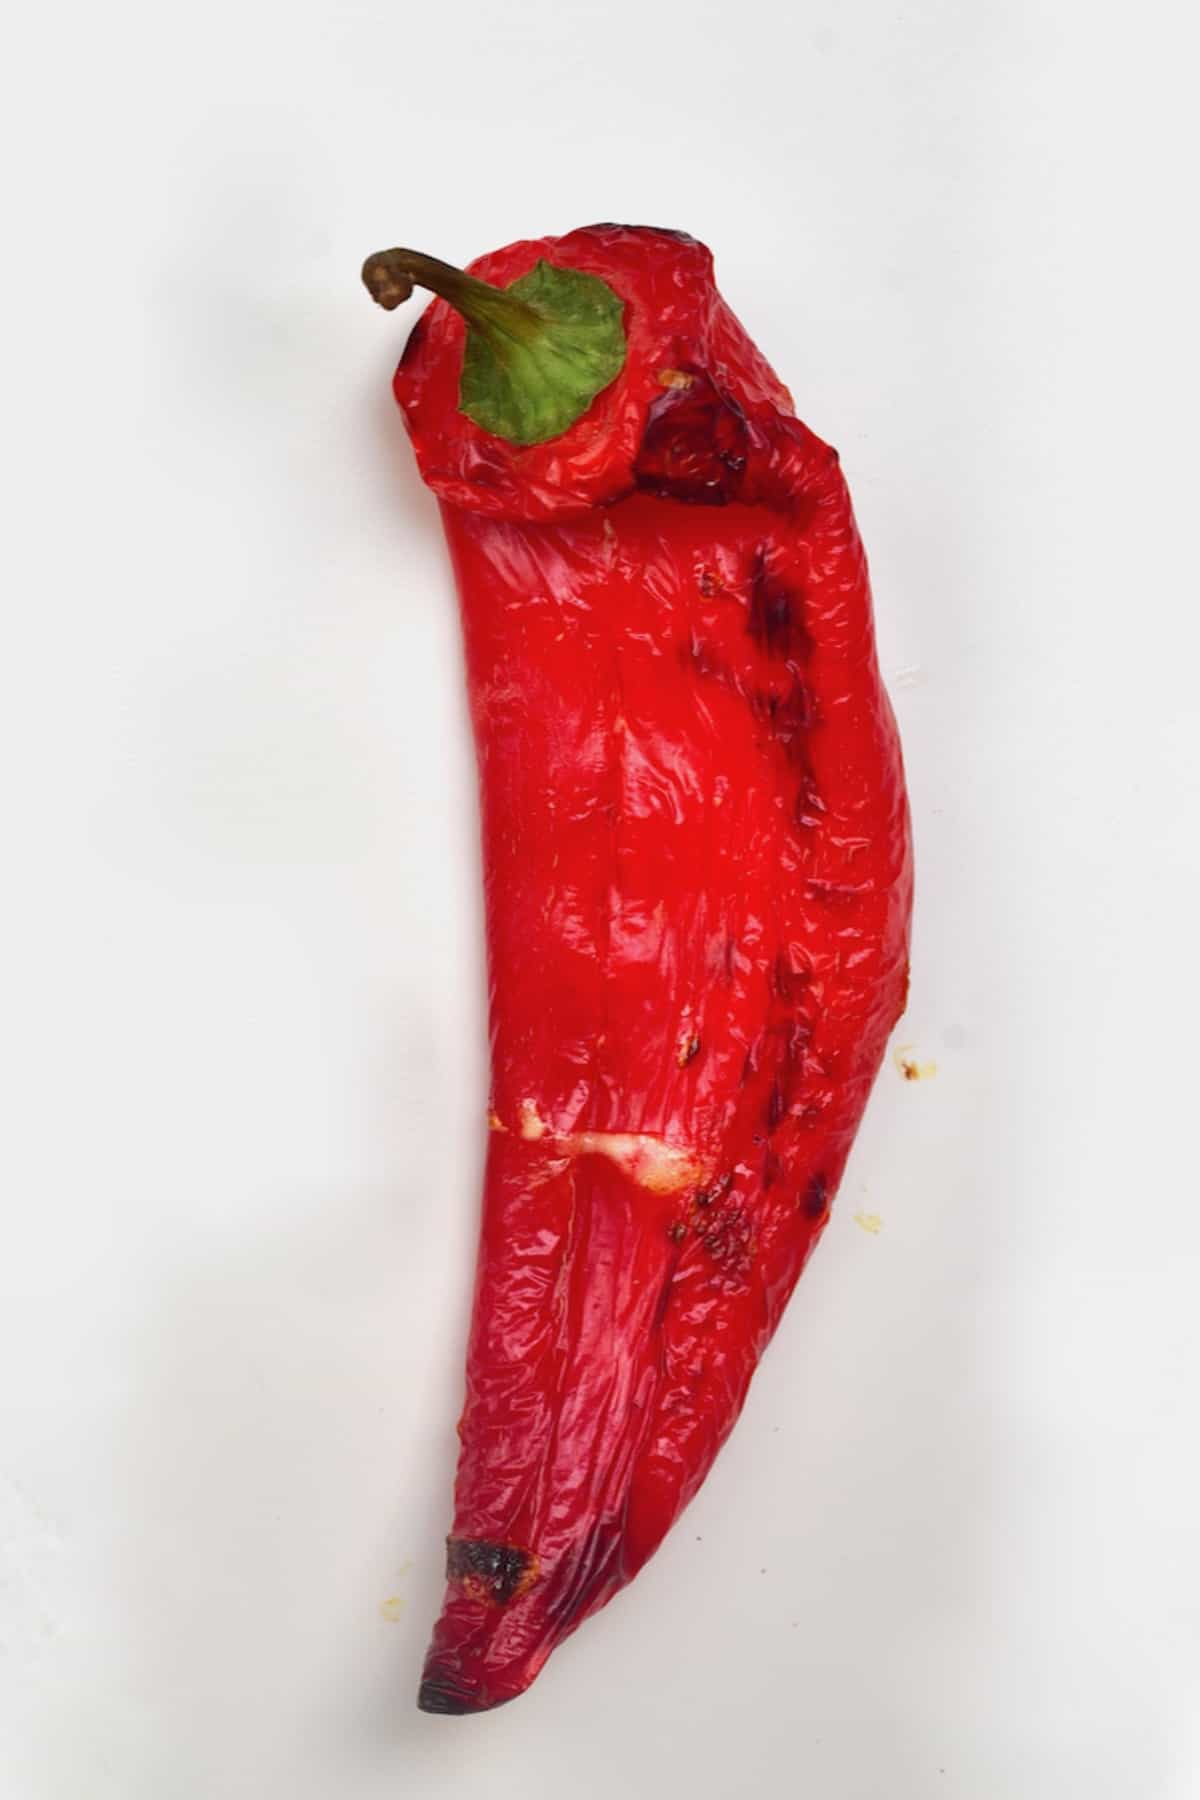 A roasted pepper on a flat surface